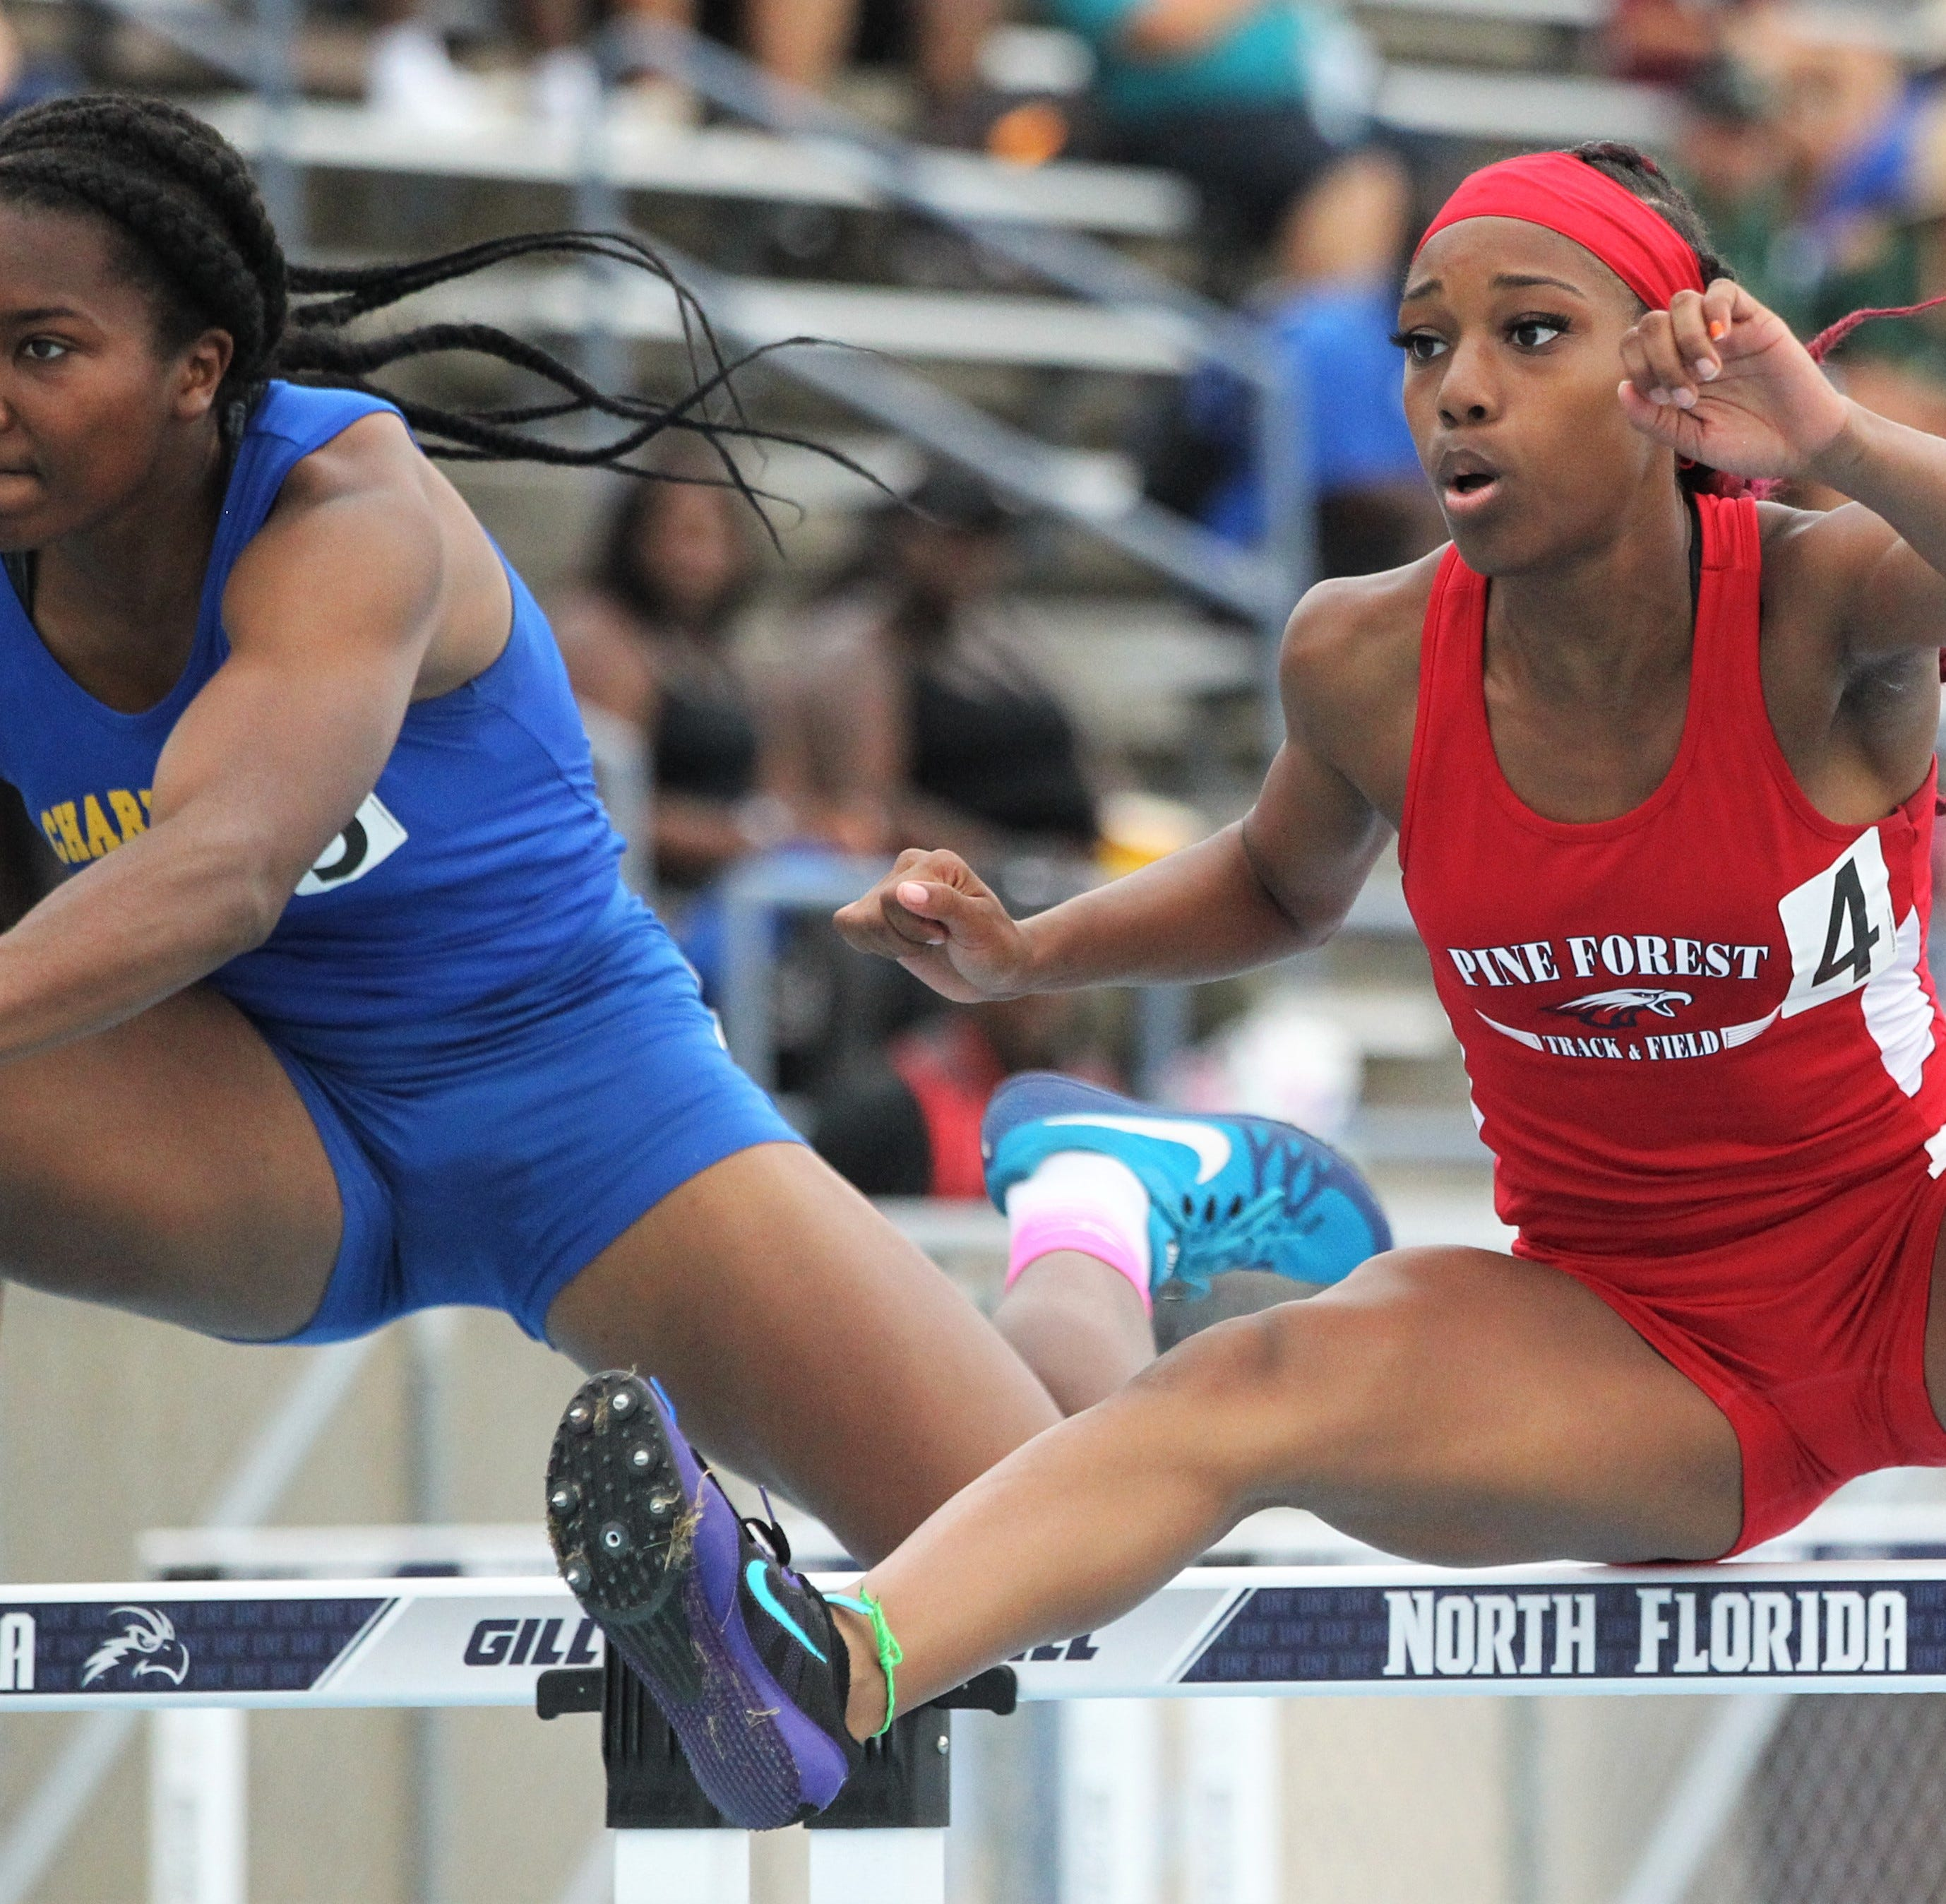 Pine Forest hurdler, Pensacola Christian vaulter win state titles